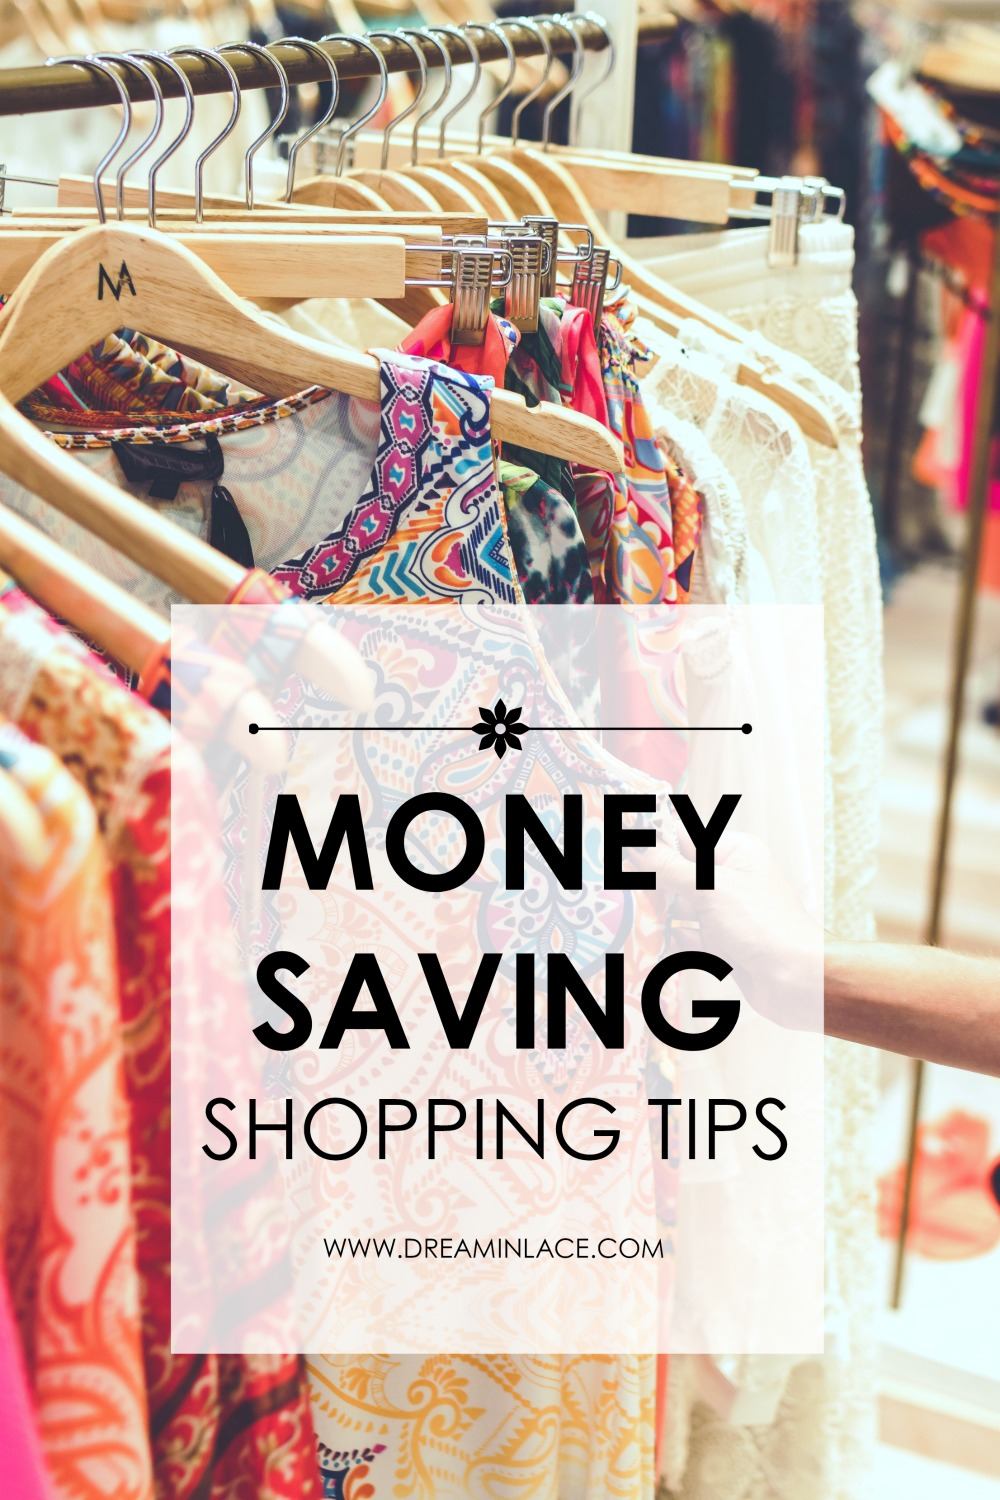 Money-Saving Shopping Tips to Score Fashion and Beauty Deals. I DreaminLace.com #BudgetFashion #shoppingtips #shopping